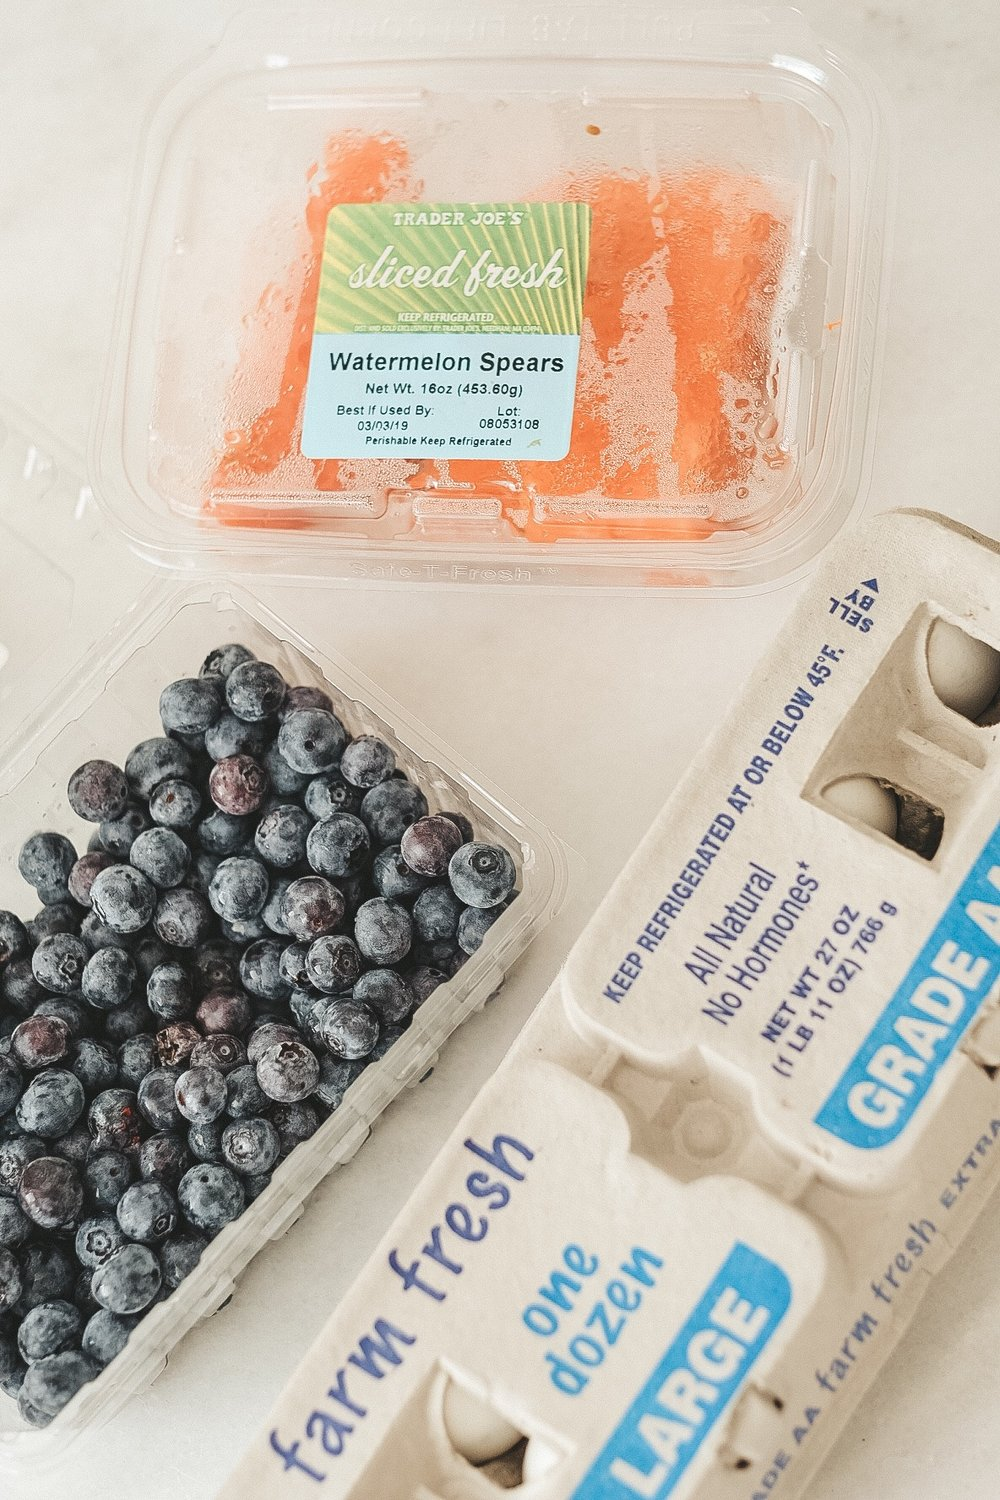 Trader Joes checklist for baby led weaning foods.  Toddler foods at Trader Joes.